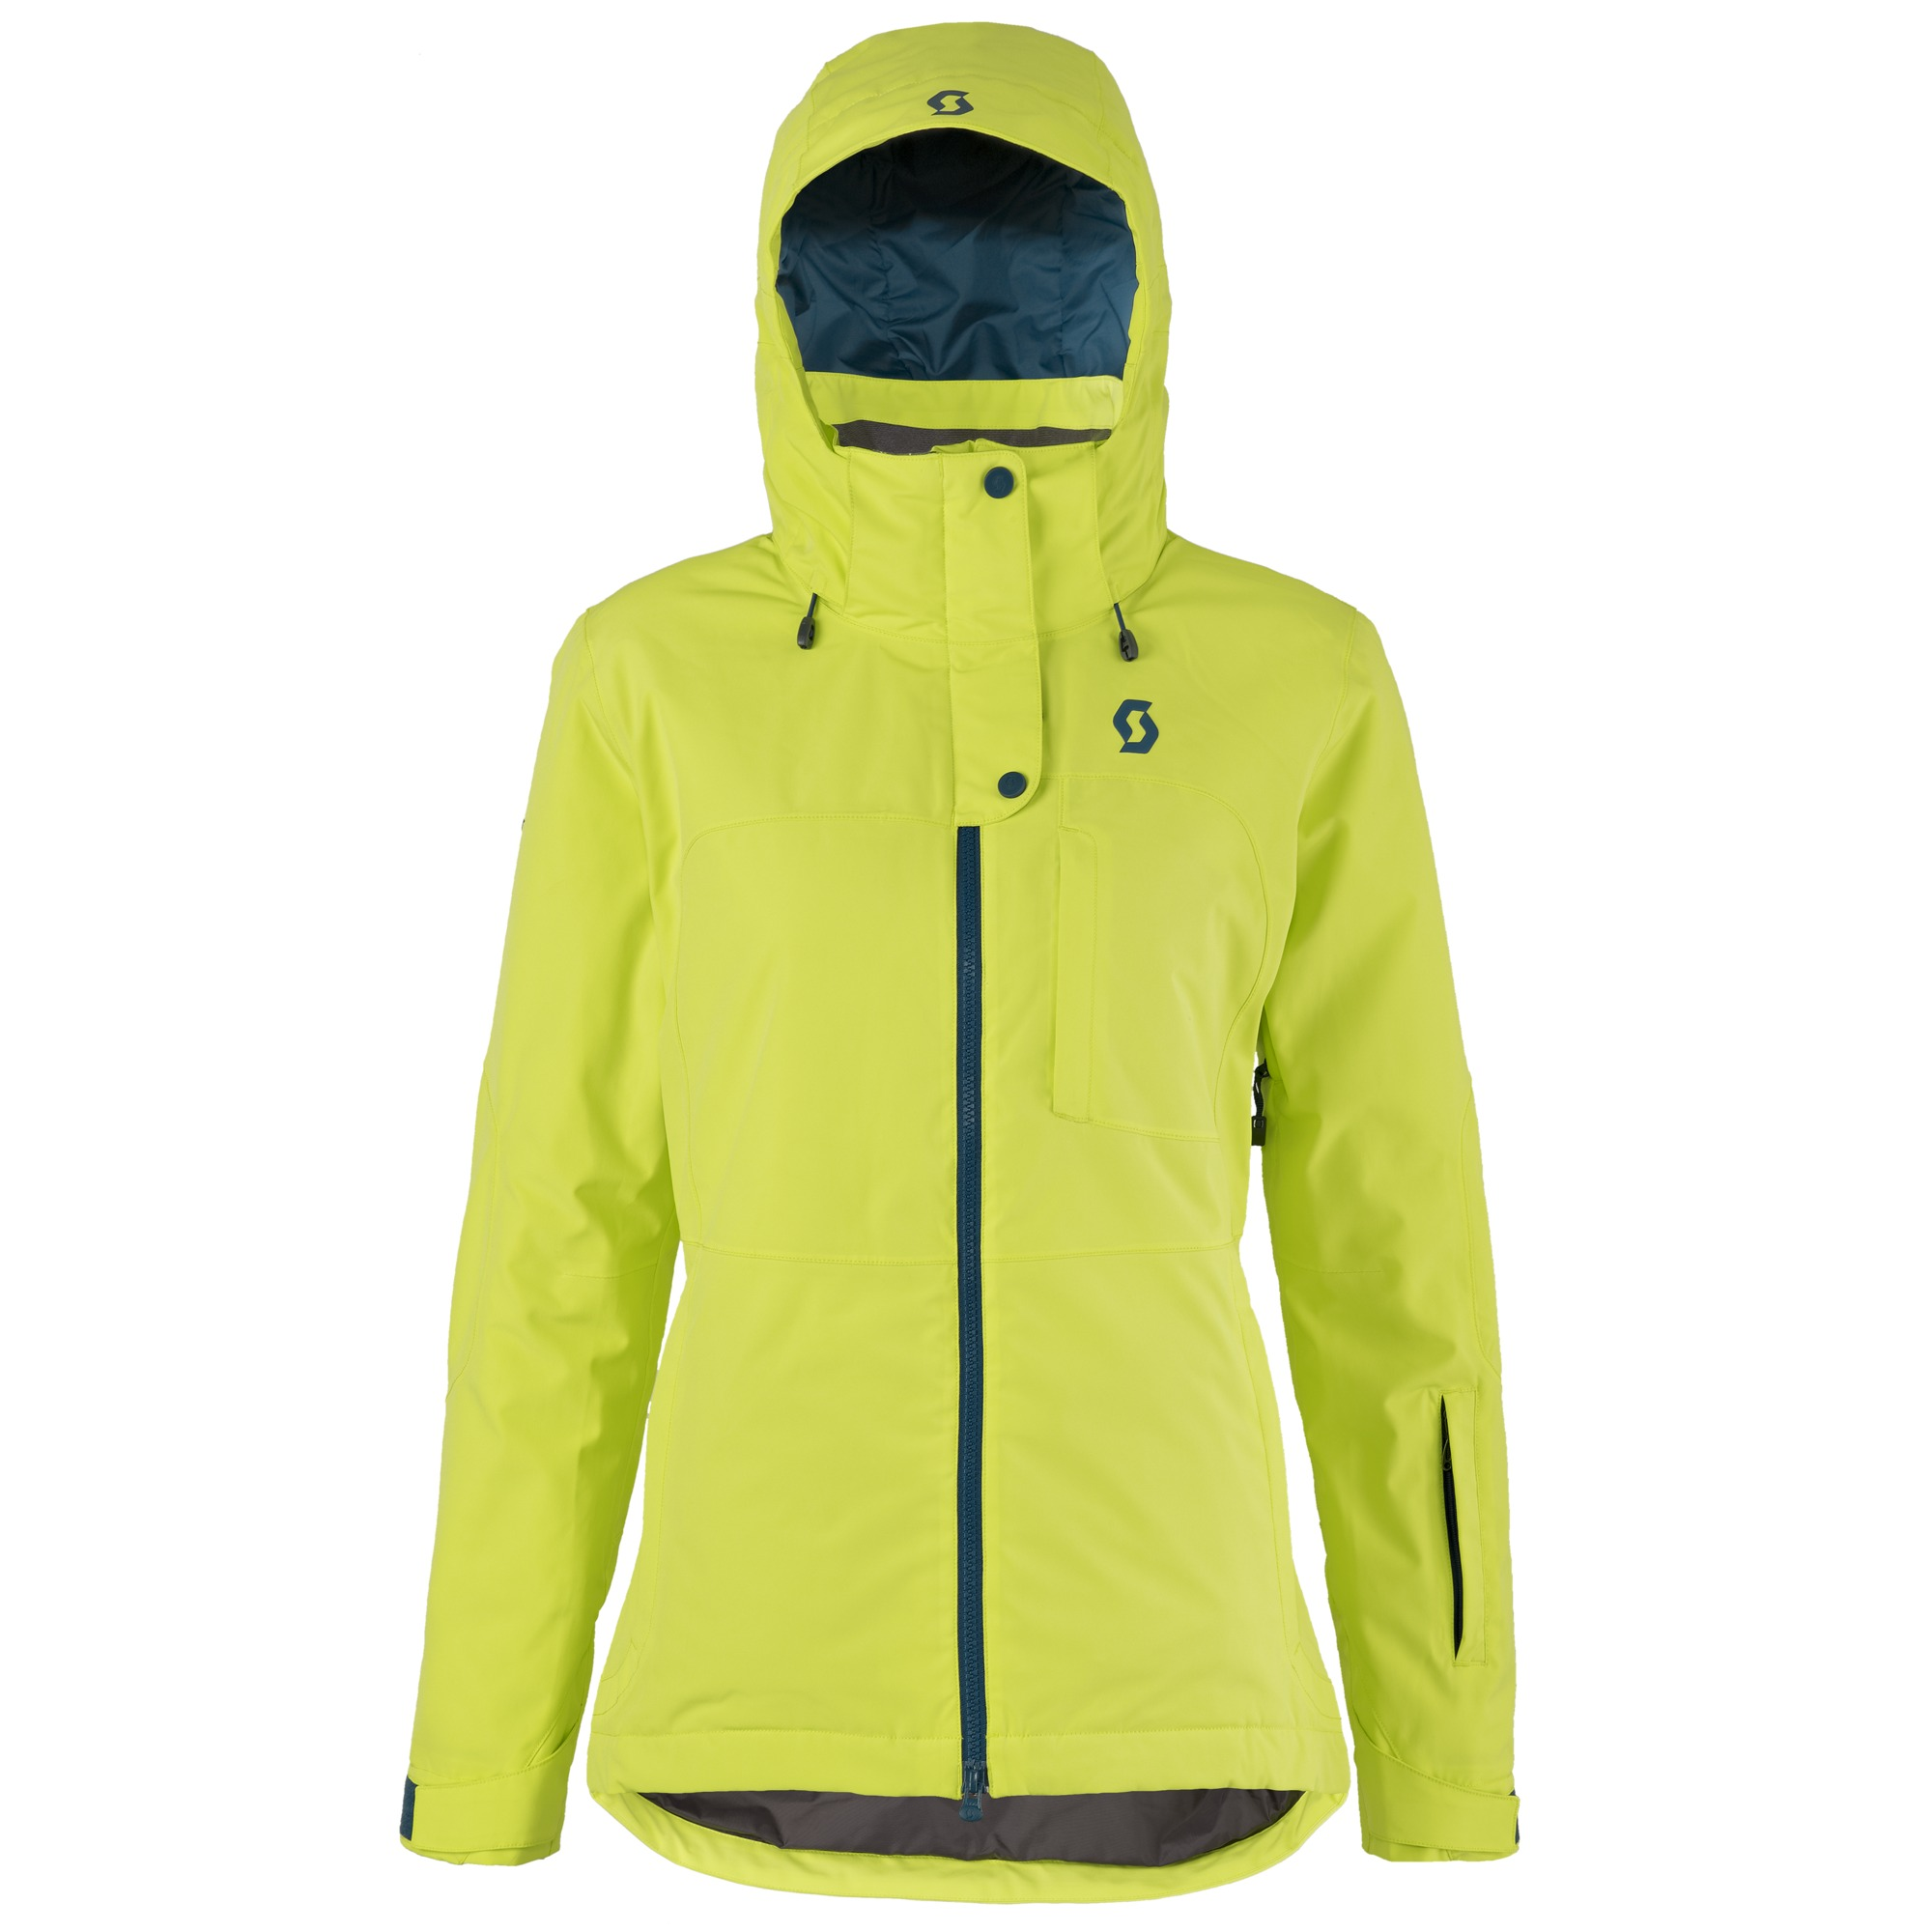 SCOTT Terrain Dryo Plus Women's Jacket